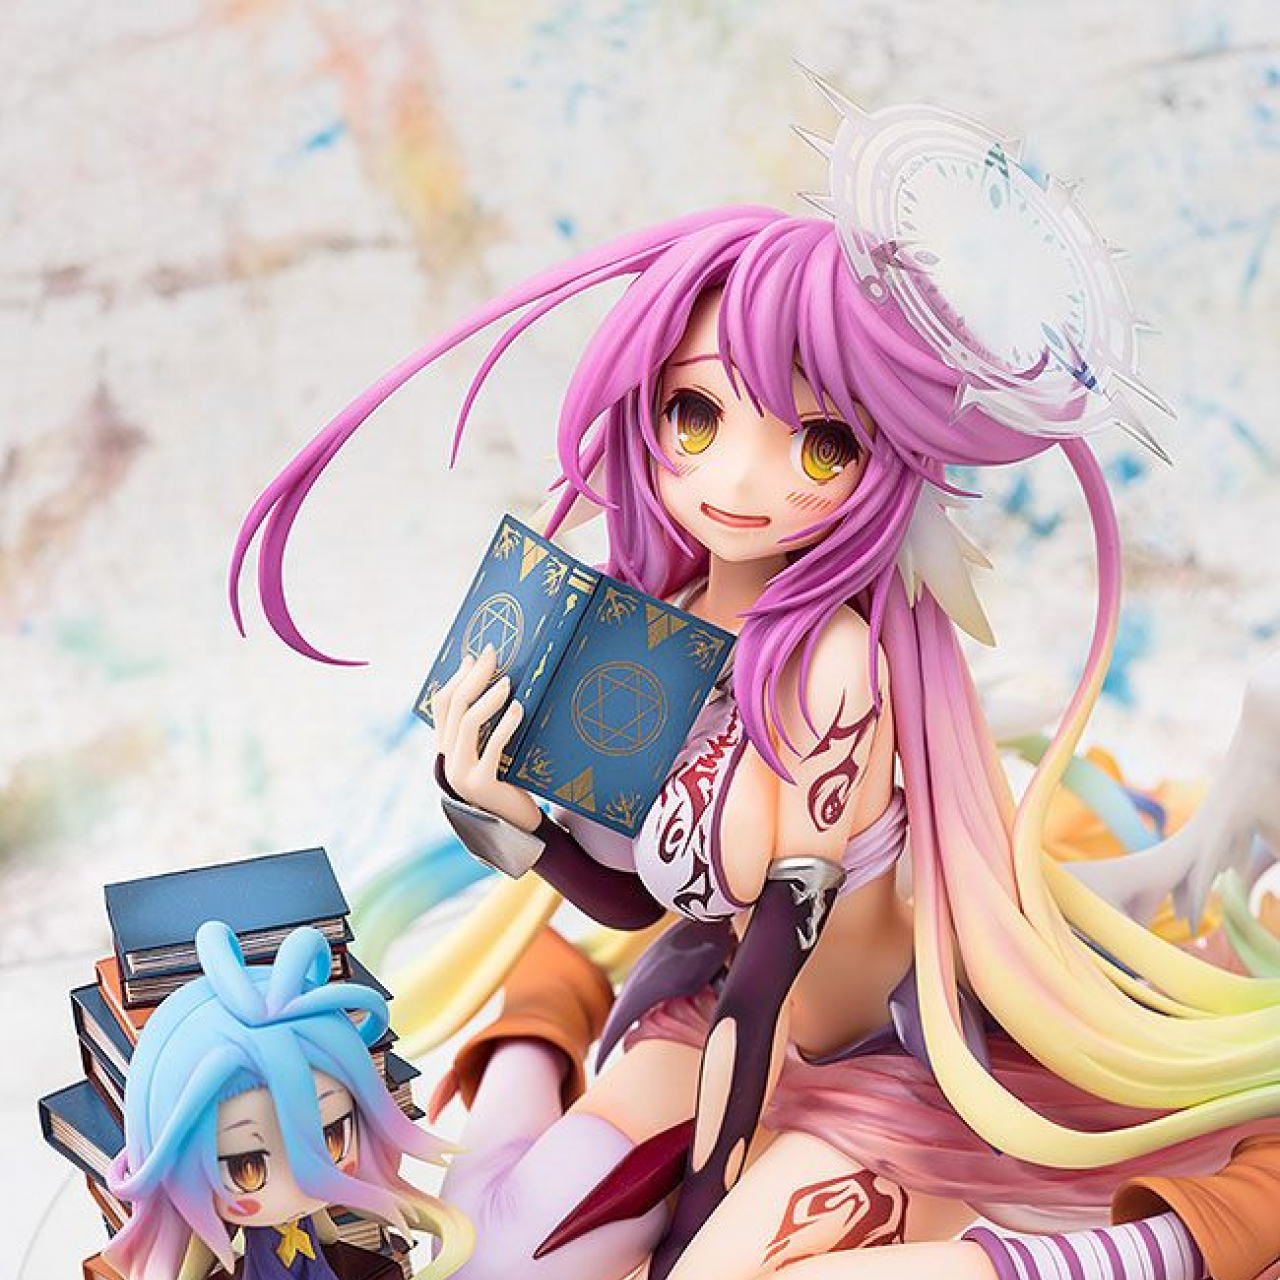 No Game No Life: Jibril (13cm, 1/7 scale)